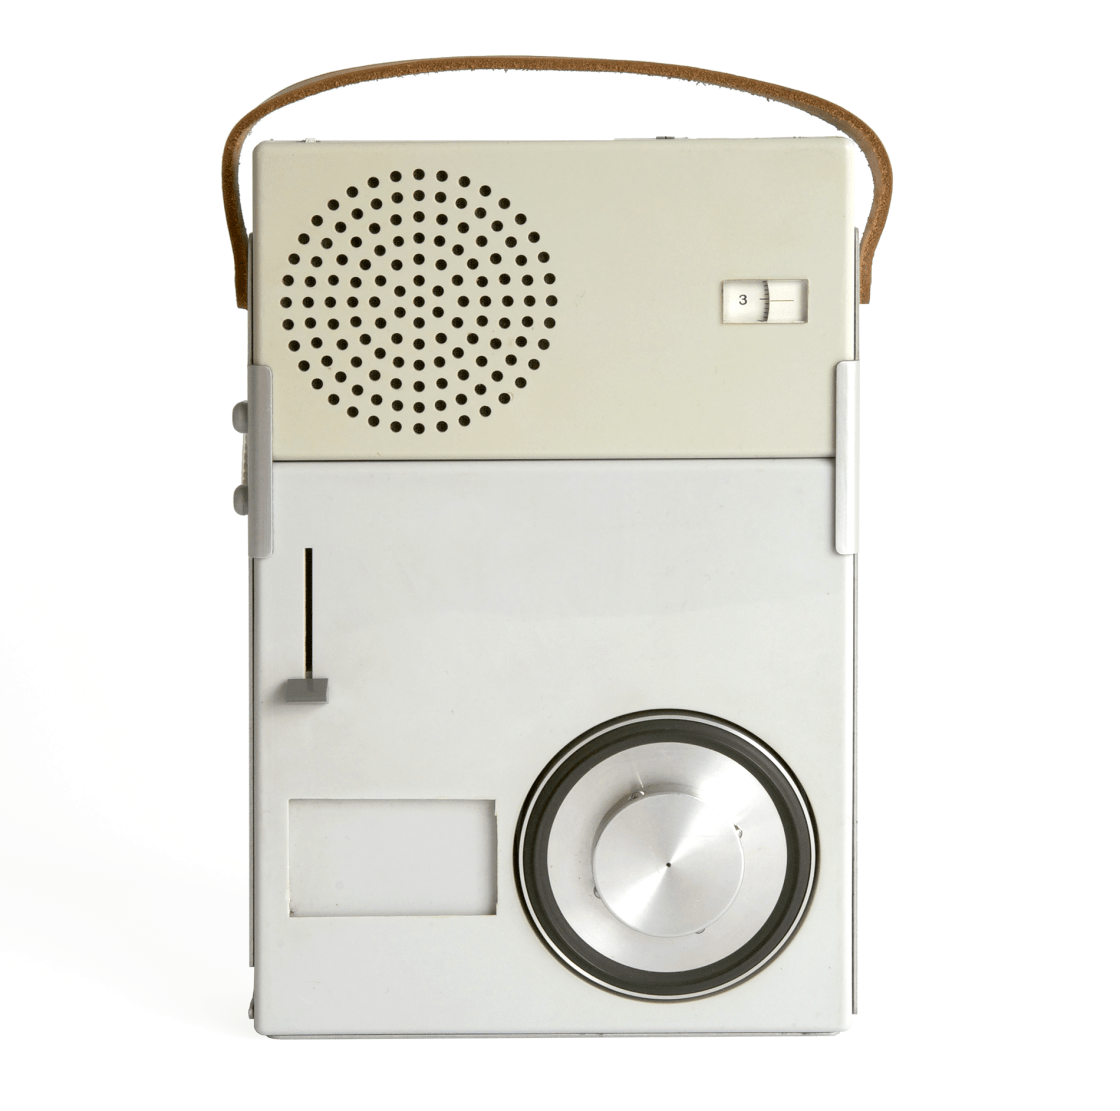 1959 - TP 1 Record player and radio receiver by Braun